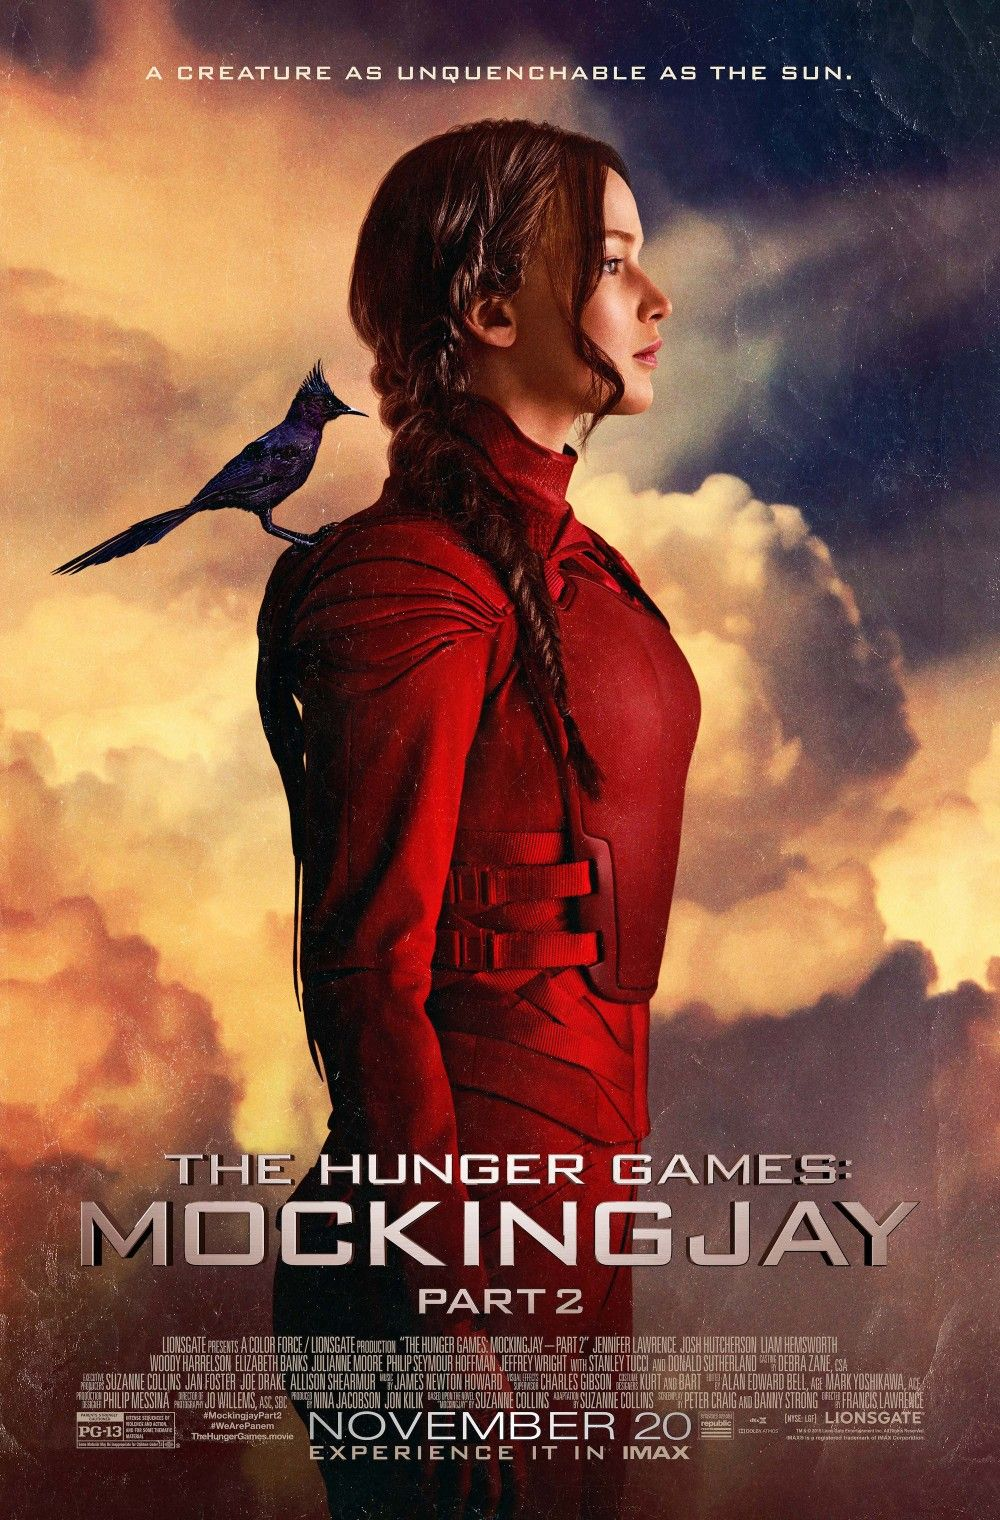 The Hunger Games Mockingjay Part 2 Hunger Games Poster Hunger Games Mockingjay Hunger Games